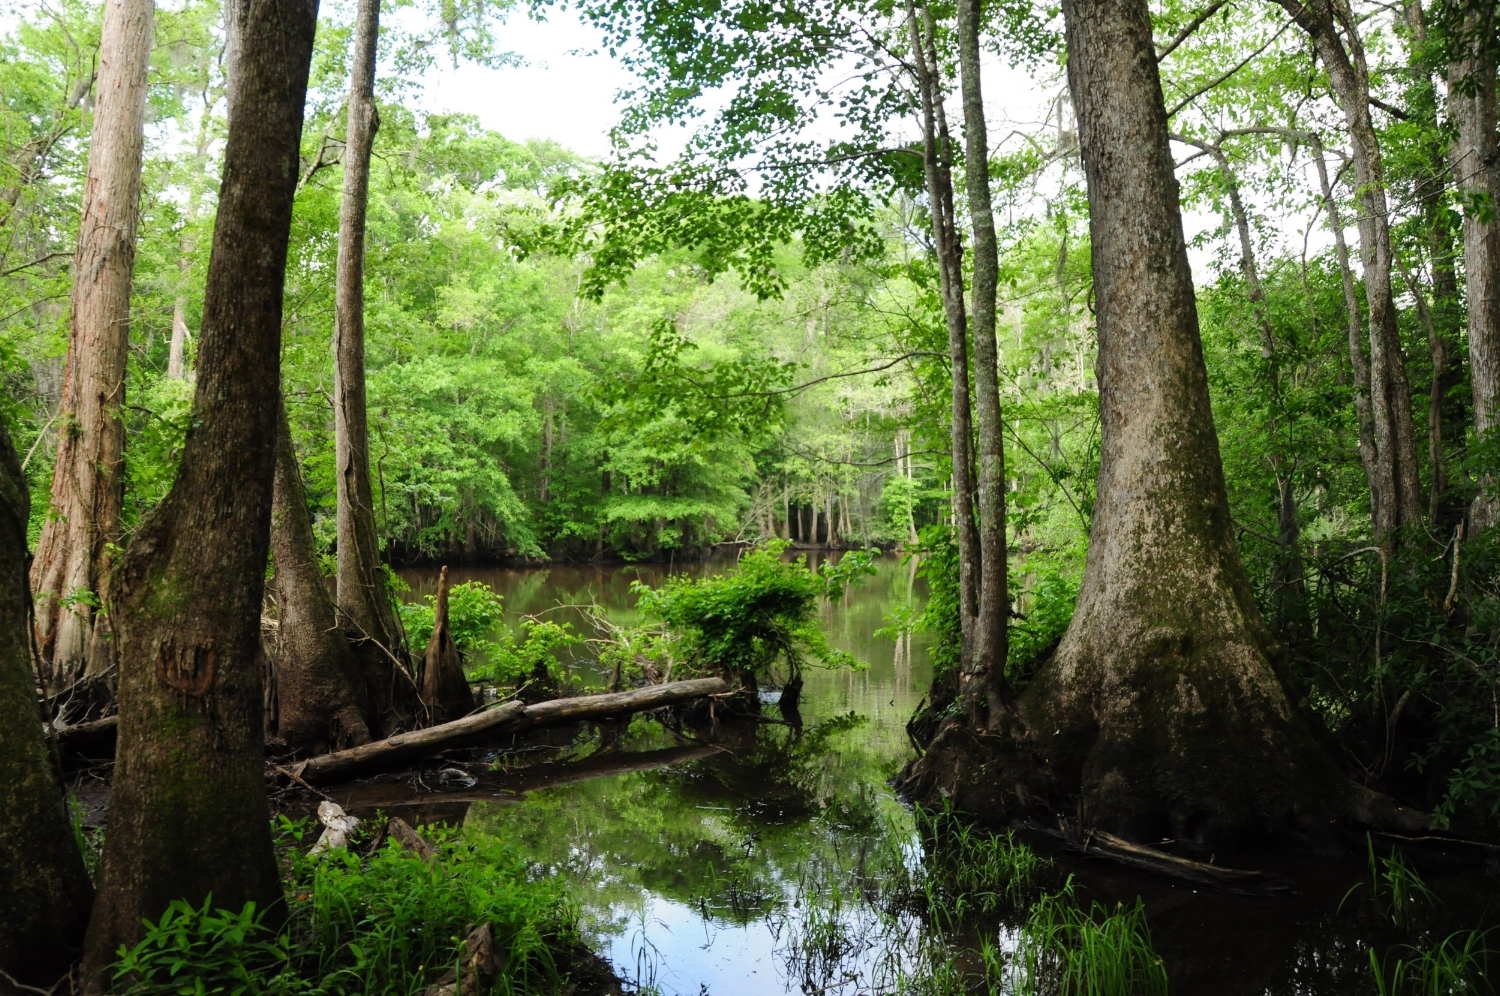 """Lynches River in the Pee Dee region of South Carolina was designated a """"State Scenic River"""" in two sections in 1994 and in 2008 (lower section). [photo by Stewart Grinton]"""